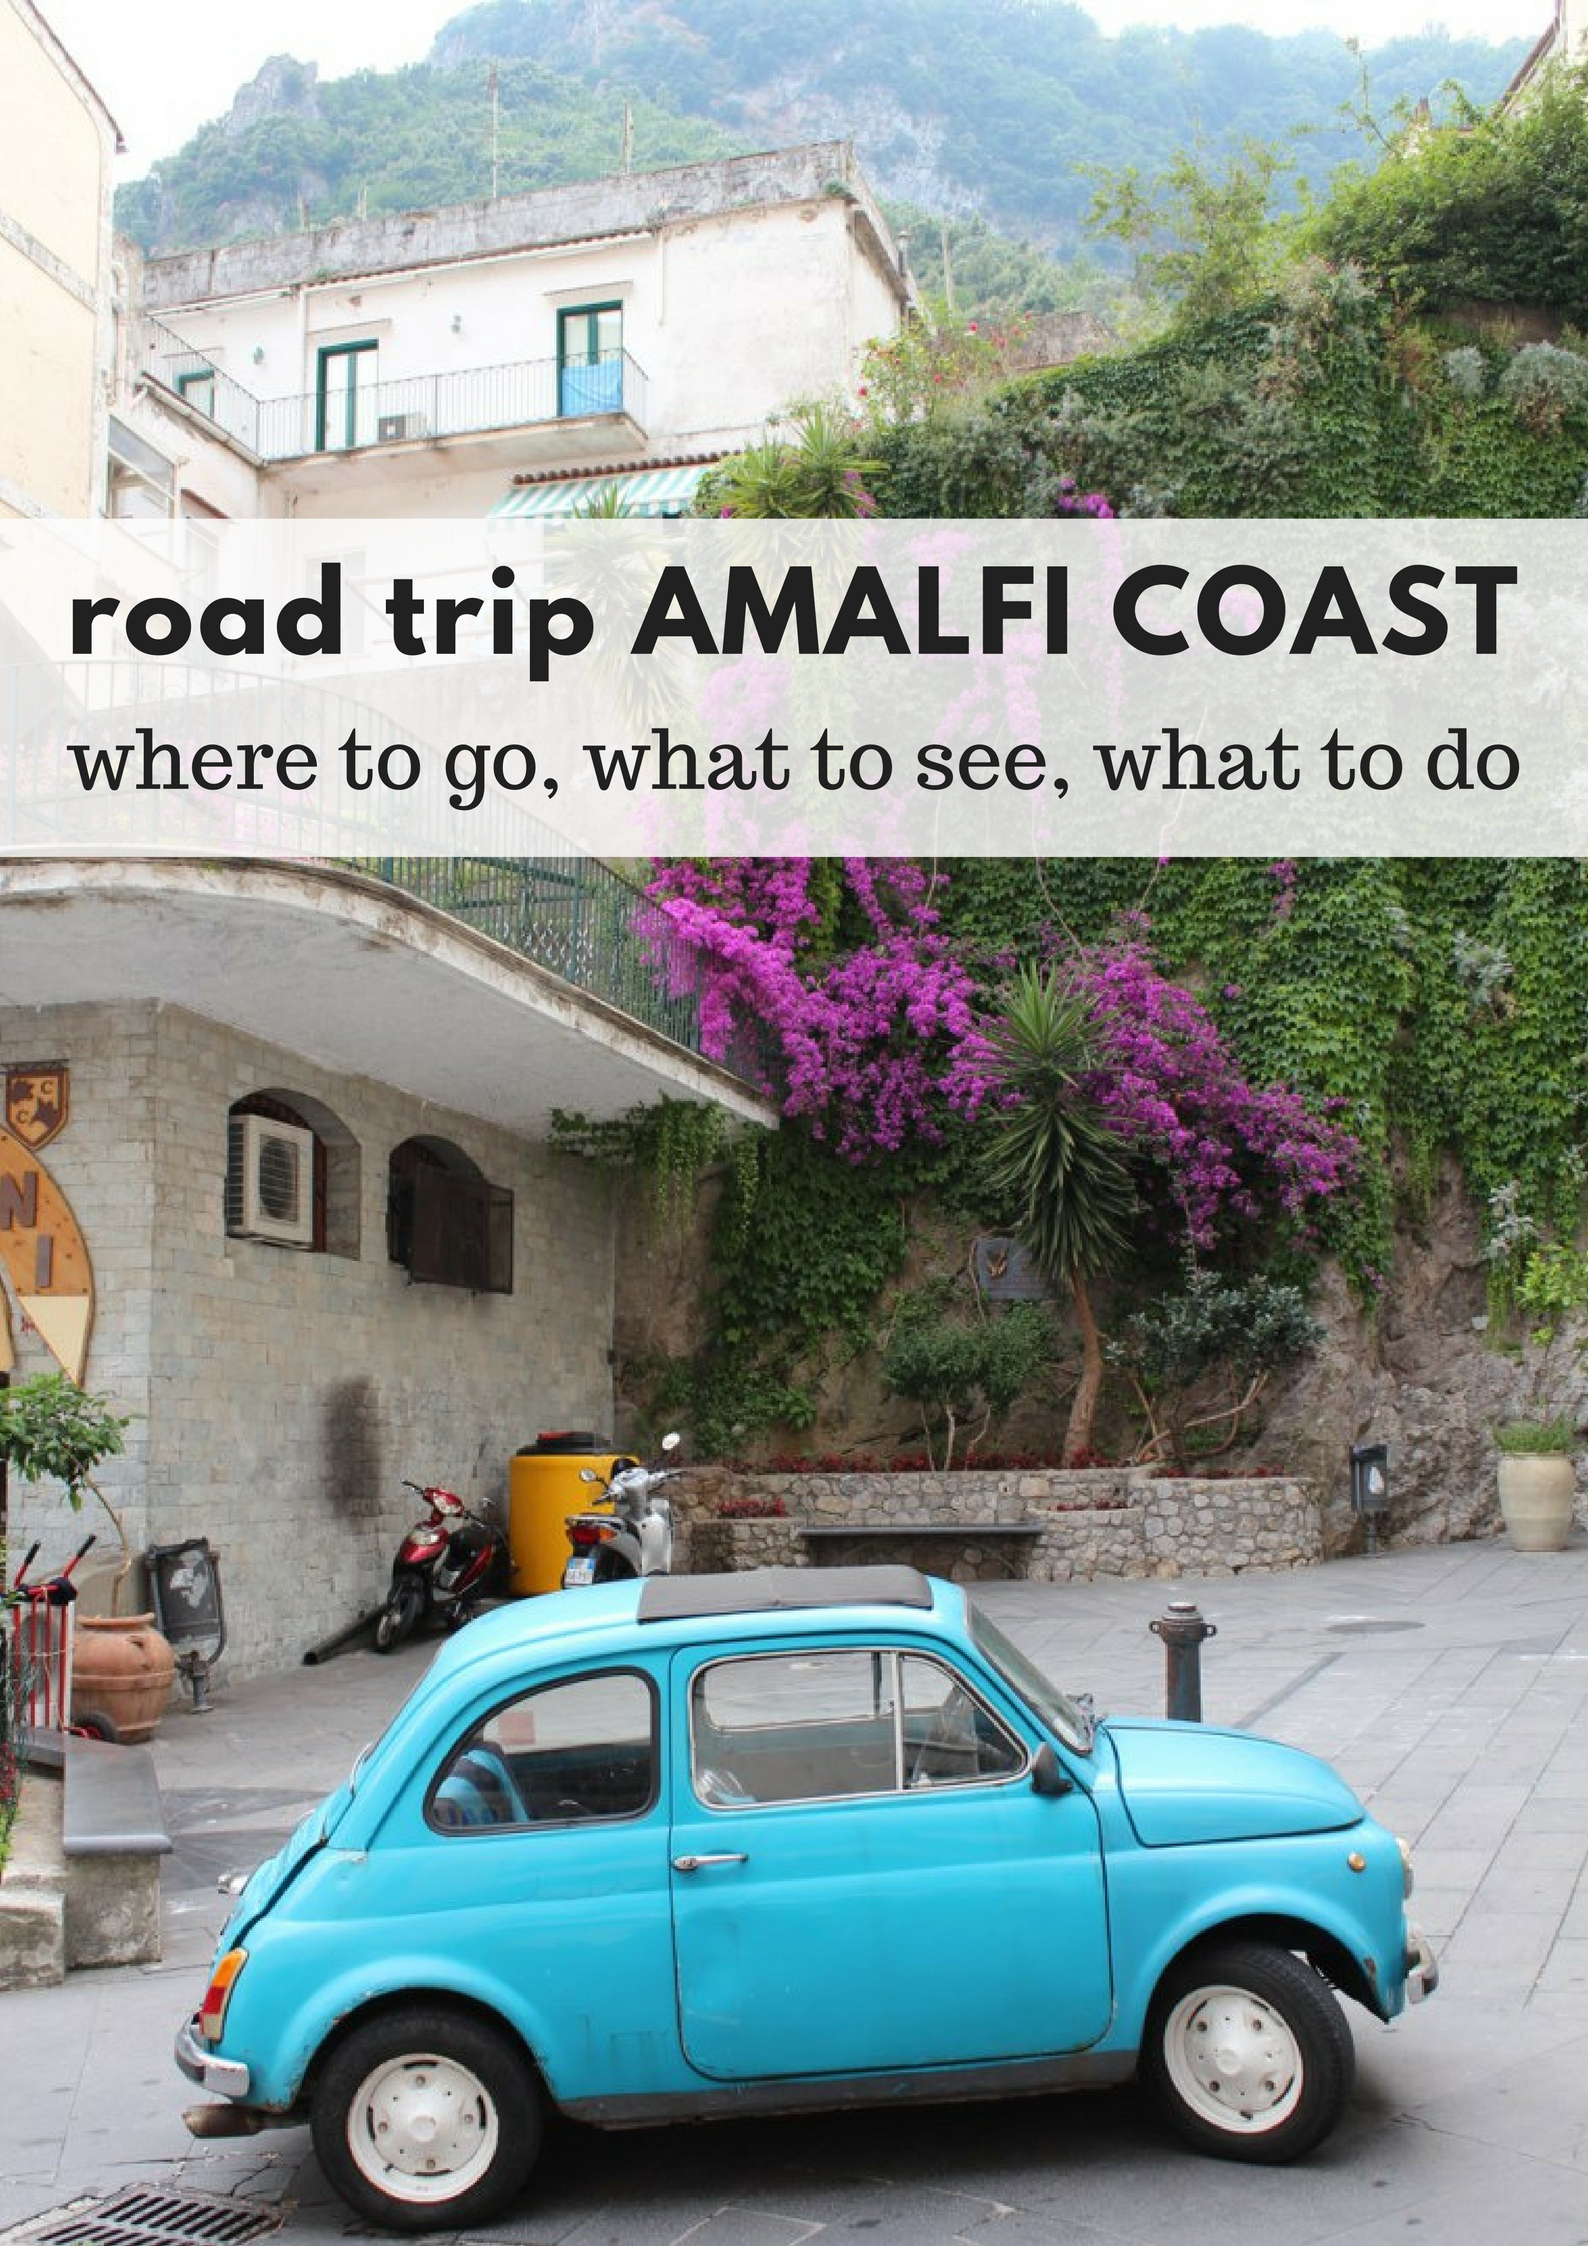 Road trip Amalfi Coast, Italy. Where to go, what to do, what to see - Map of Joy